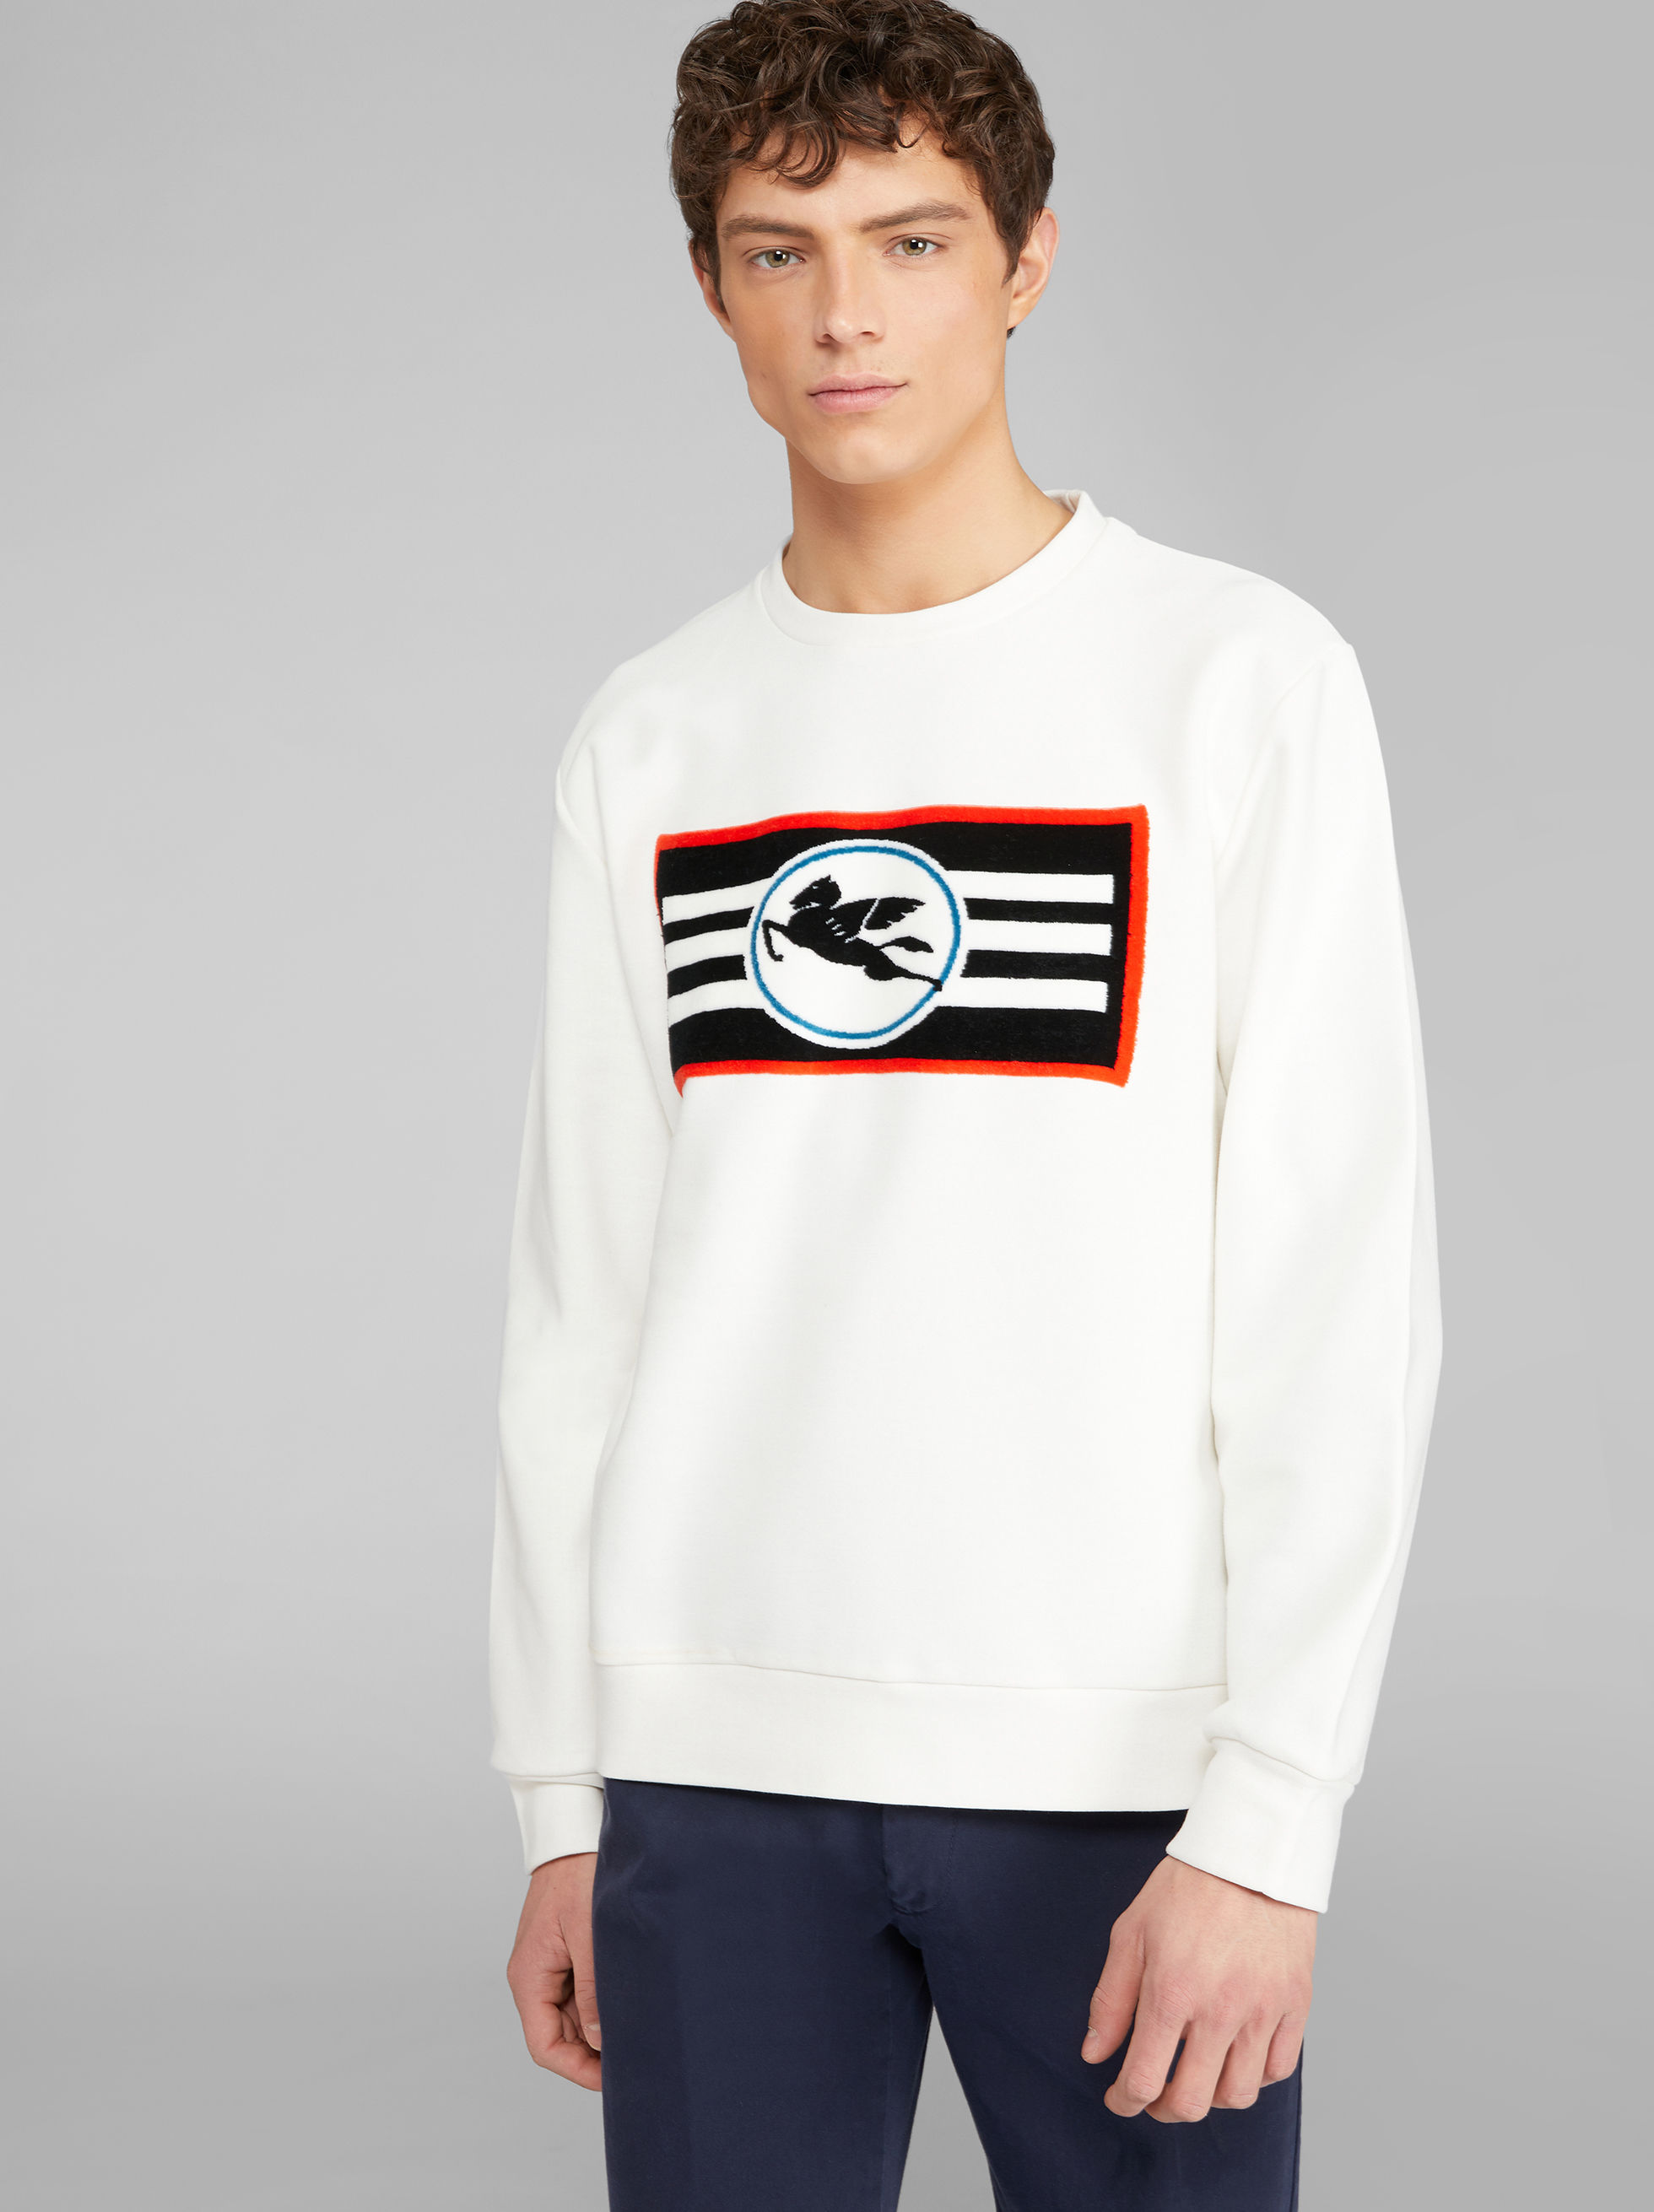 COTTON SWEATSHIRT WITH PEGASO LOGO